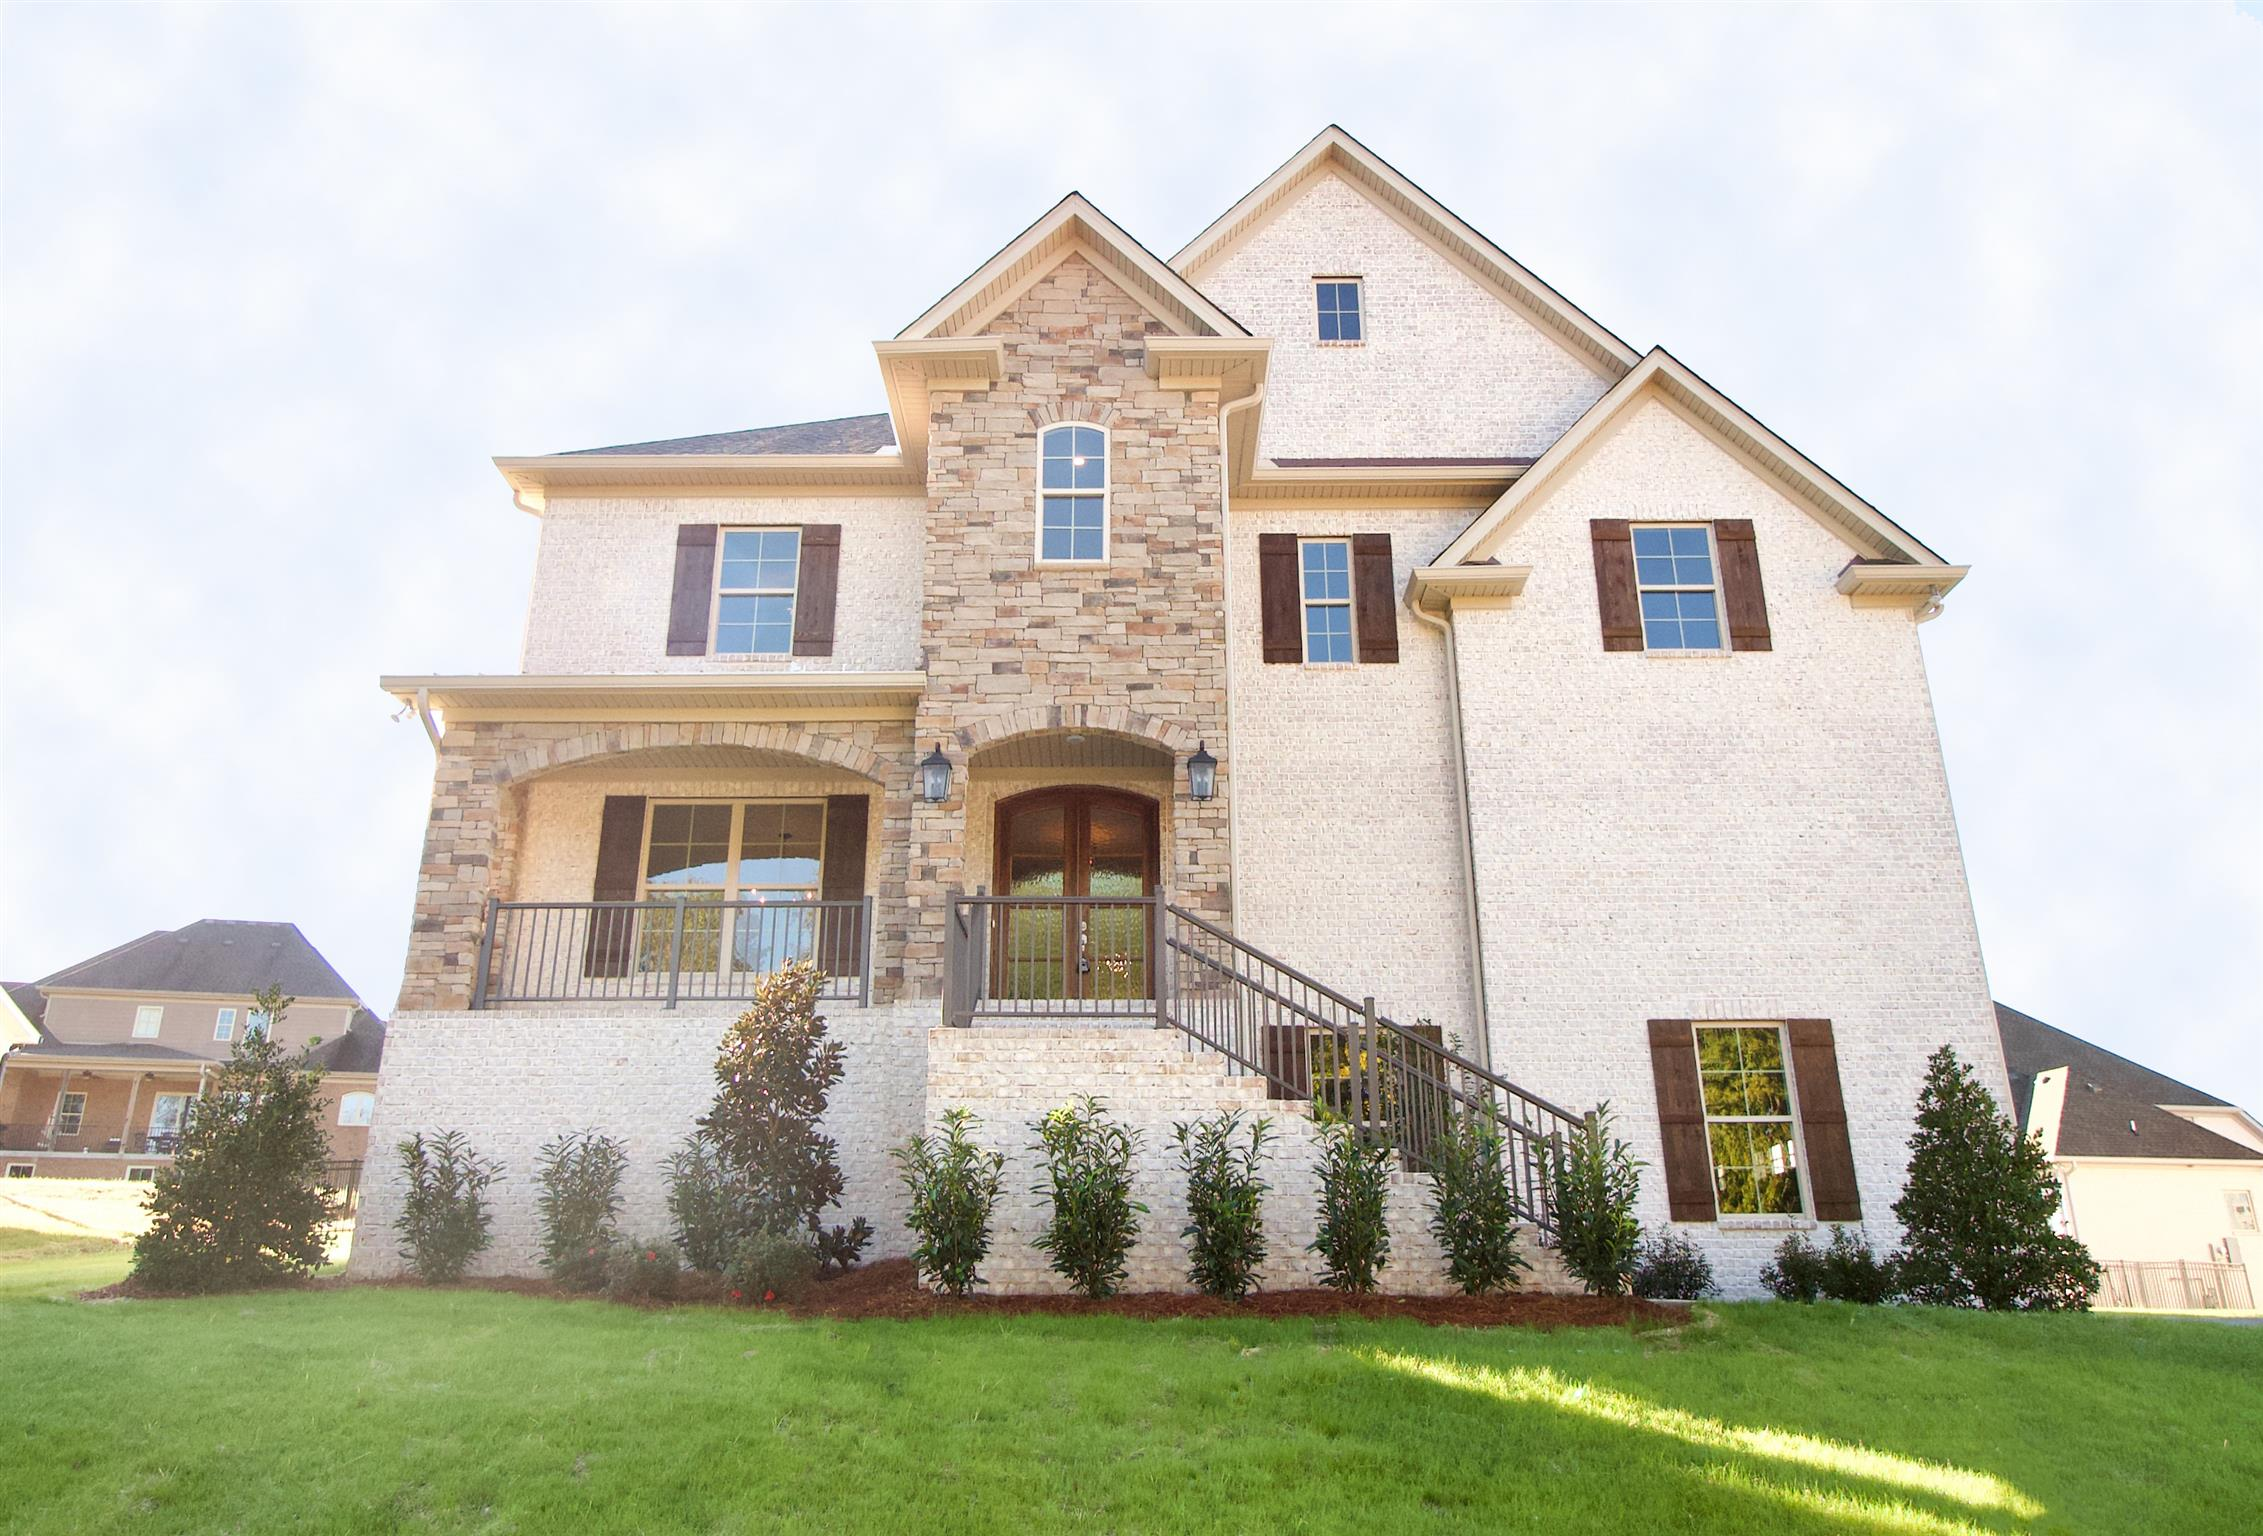 $549,950 - 4Br/4Ba -  for Sale in Meadows Of Indian Lake, Hendersonville